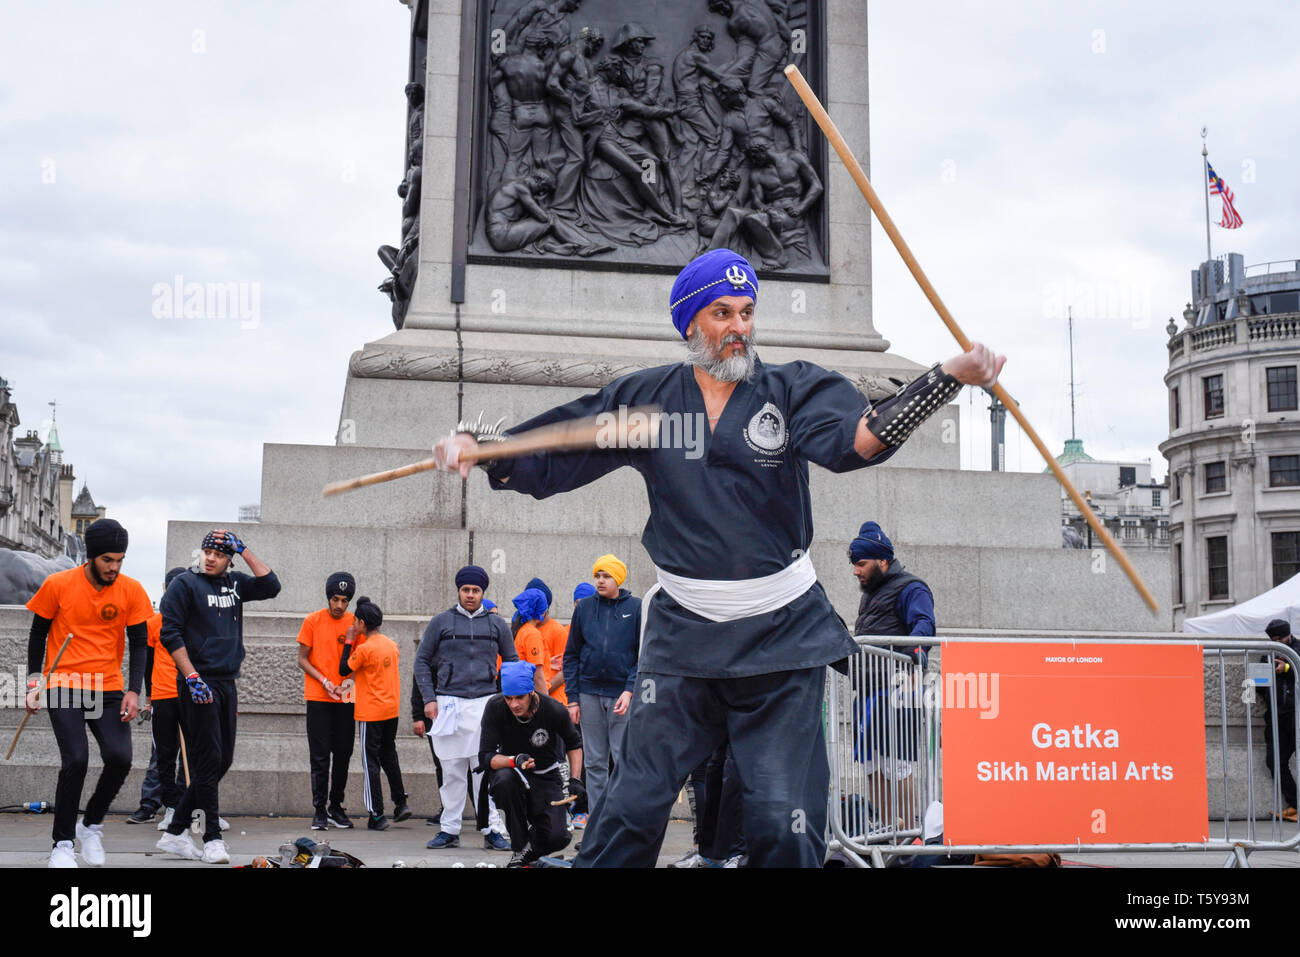 London, UK.  27 April 2019.  A man performs Gatka, Sikh martial arts, during the festival of Vaisakhi in Trafalgar Square, hosted by the Mayor of London.  For Sikhs and Punjabis, the festival celebrates the spring harvest and commemorates the founding of the Khalsa community over 300 years ago.   Credit: Stephen Chung / Alamy Live News - Stock Image